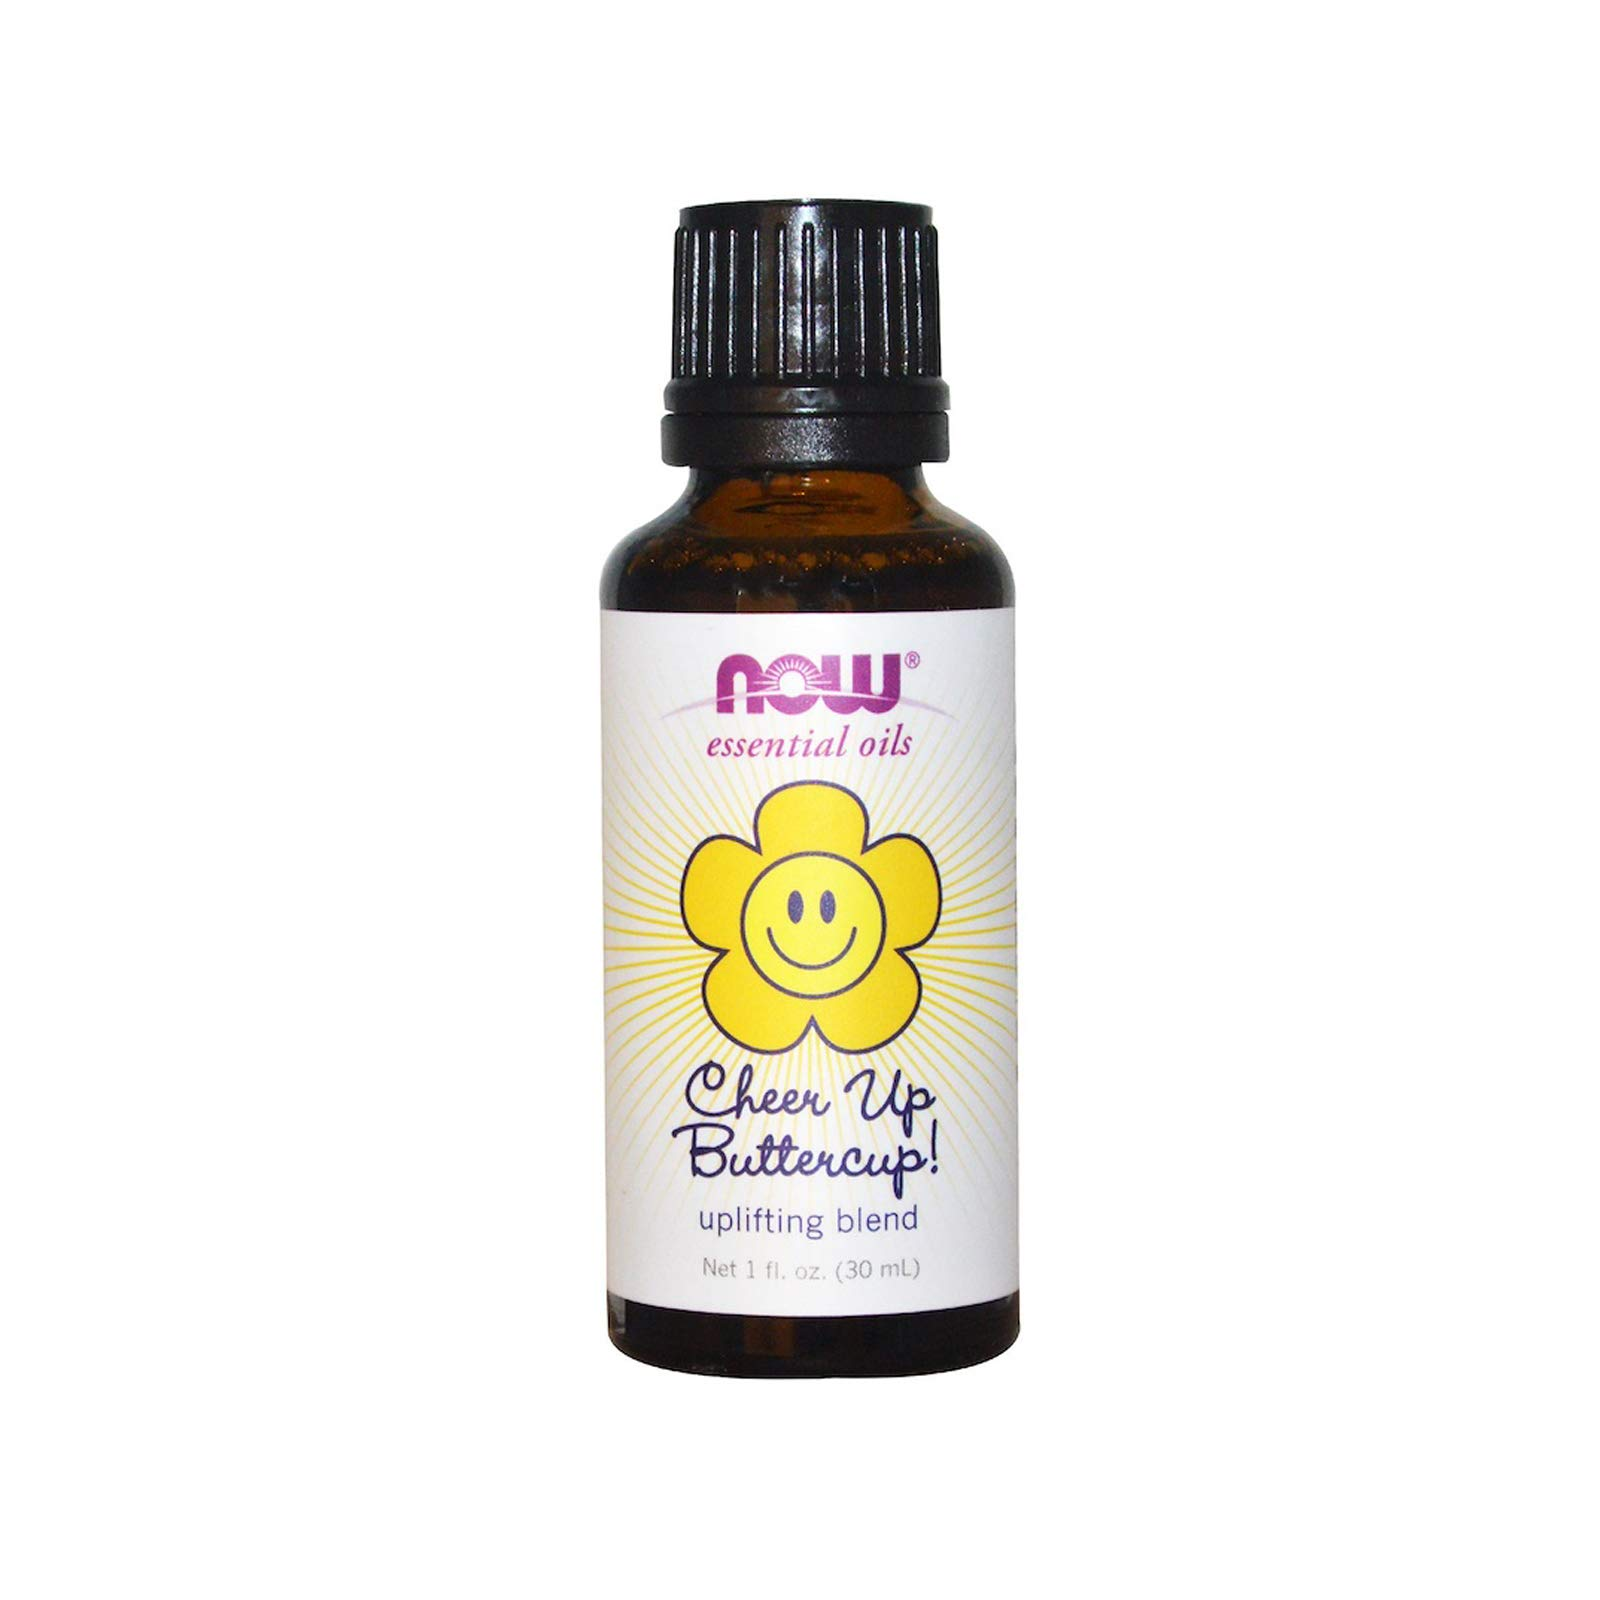 Bath & Body Health & Beauty 4x Aura Cacia Room & Body Mist Refreshing Uplifting Essential Oil Daily Bath